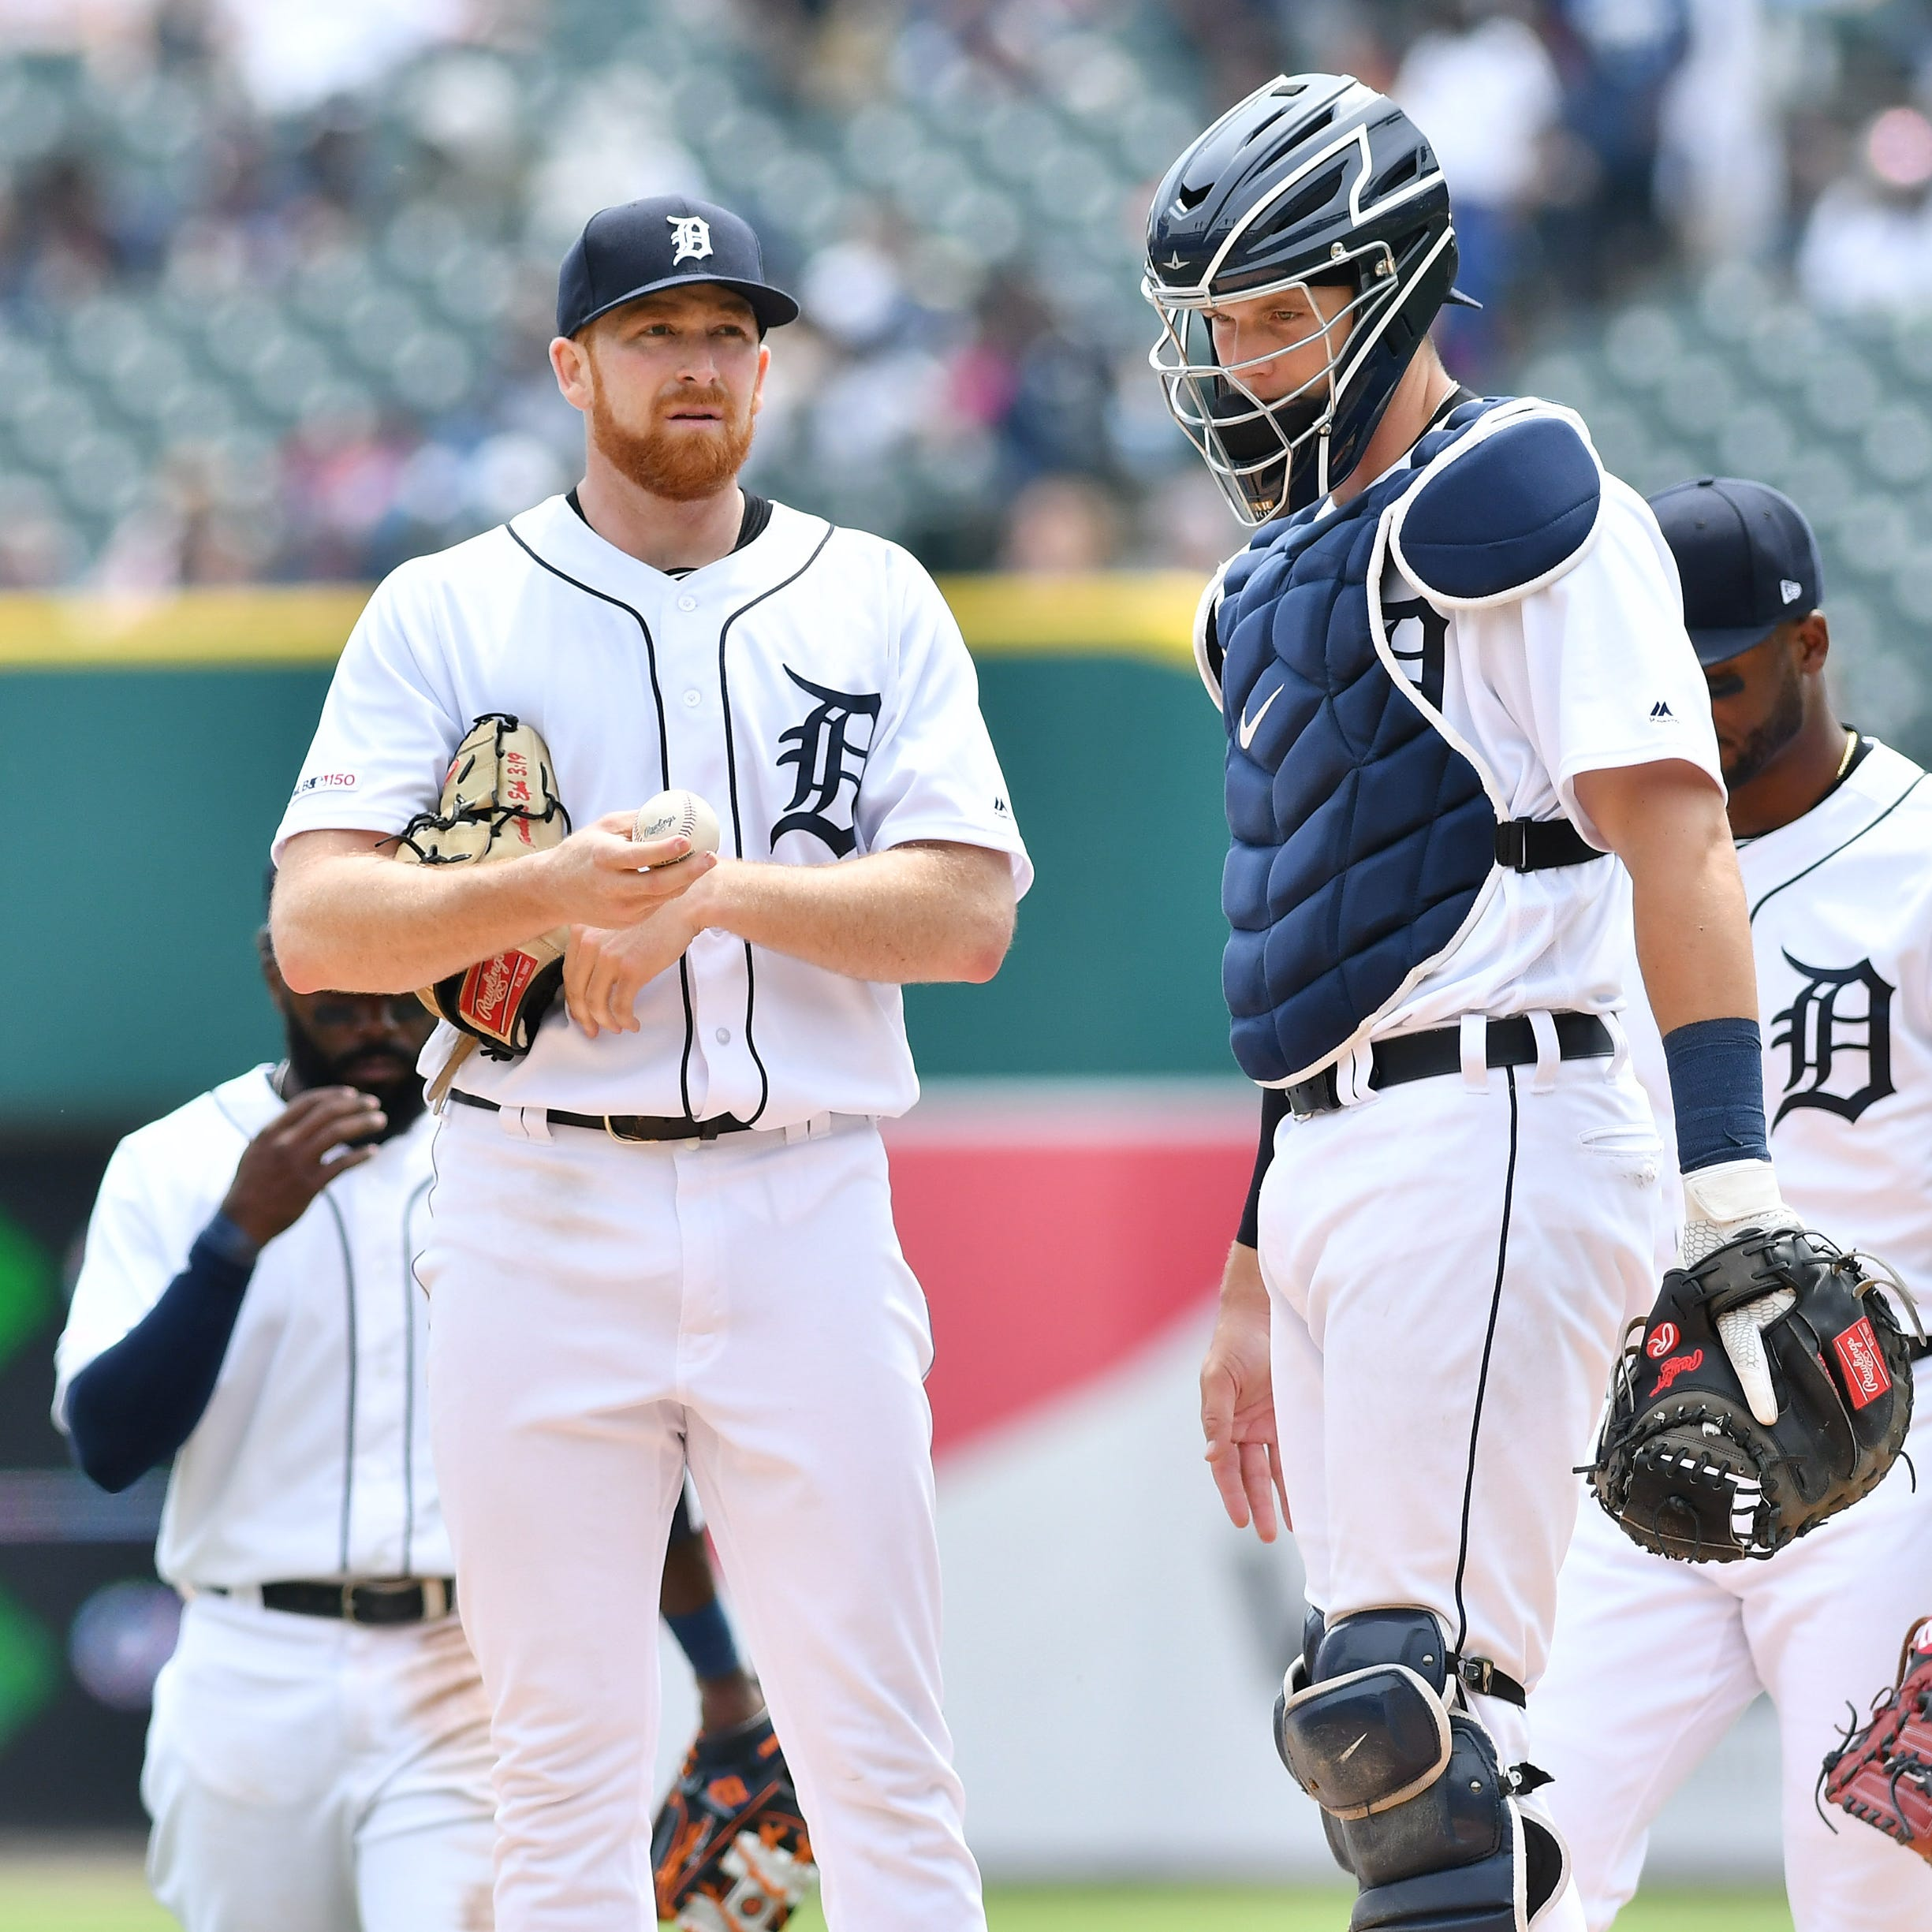 Athletics wallop Tigers pitchers, 17-3